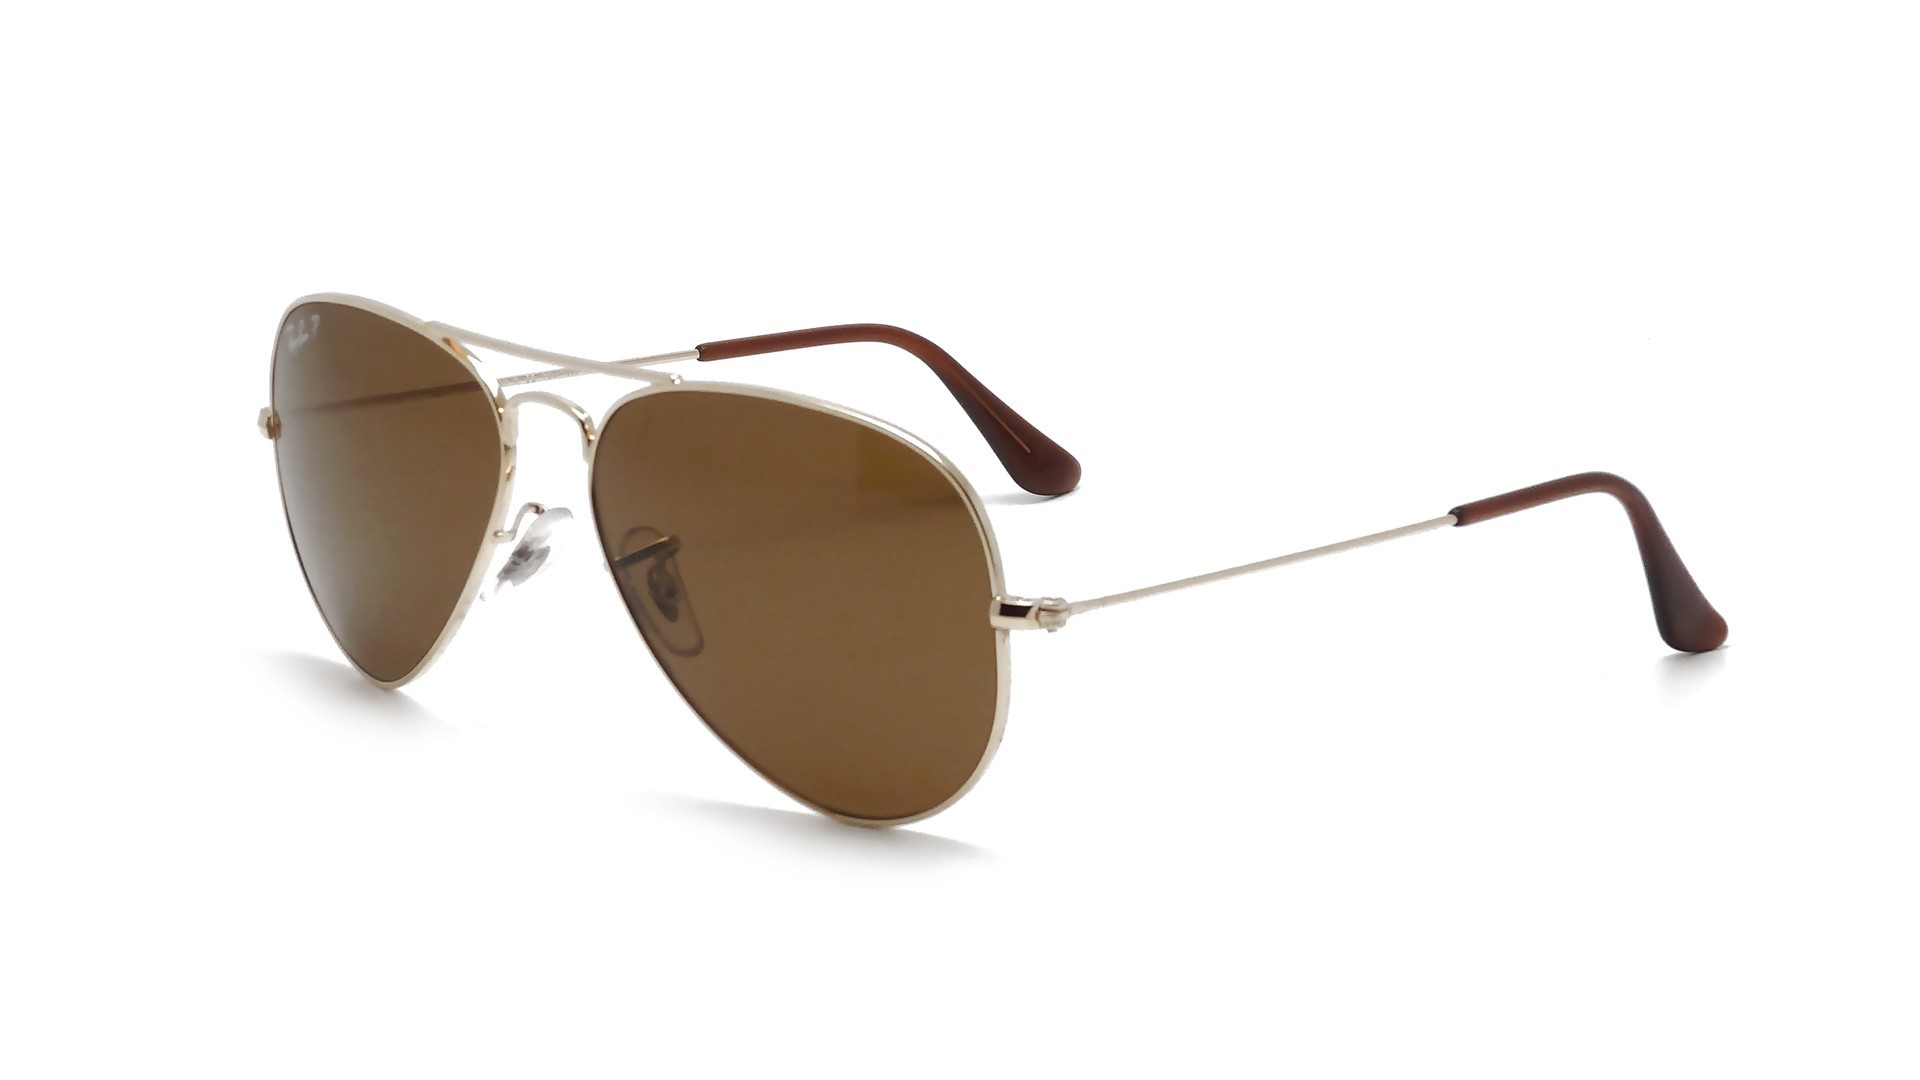 Sunglasses Ray-Ban Aviator Large Metal Gold RB3025 001 57 58-14 Large  Polarized 89adabb5ffd1